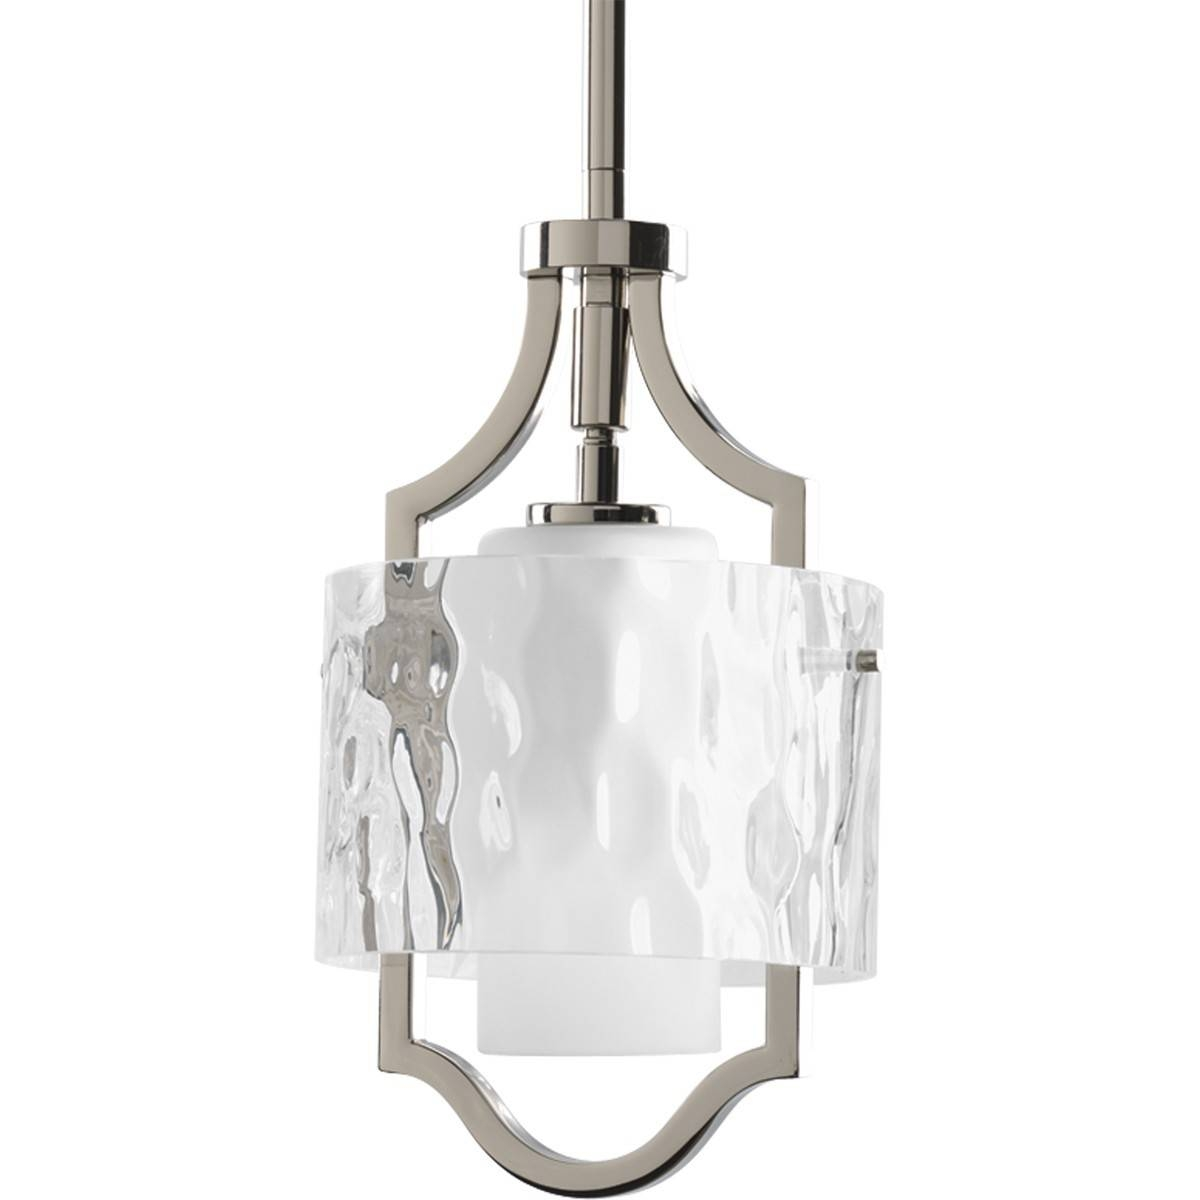 Mini Pendant Light Fixture With Etched Glass Diffuser Inside Clear In Etched Glass Pendant Lights (View 2 of 15)